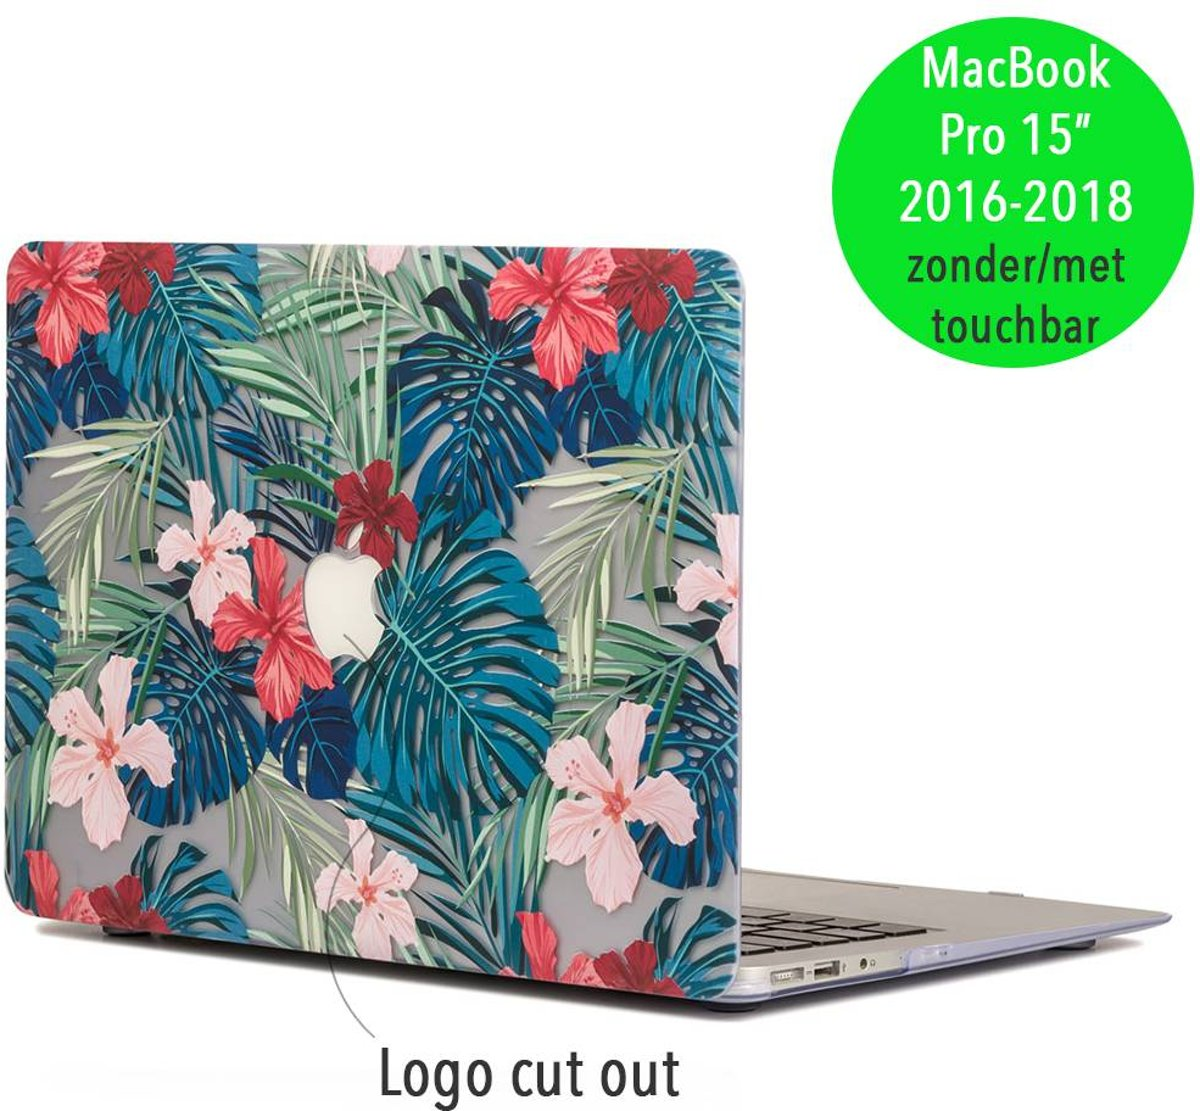 Lunso - palmboom bladeren hardcase hoes - MacBook Pro Retina 15 inch (2016-2018) - rood